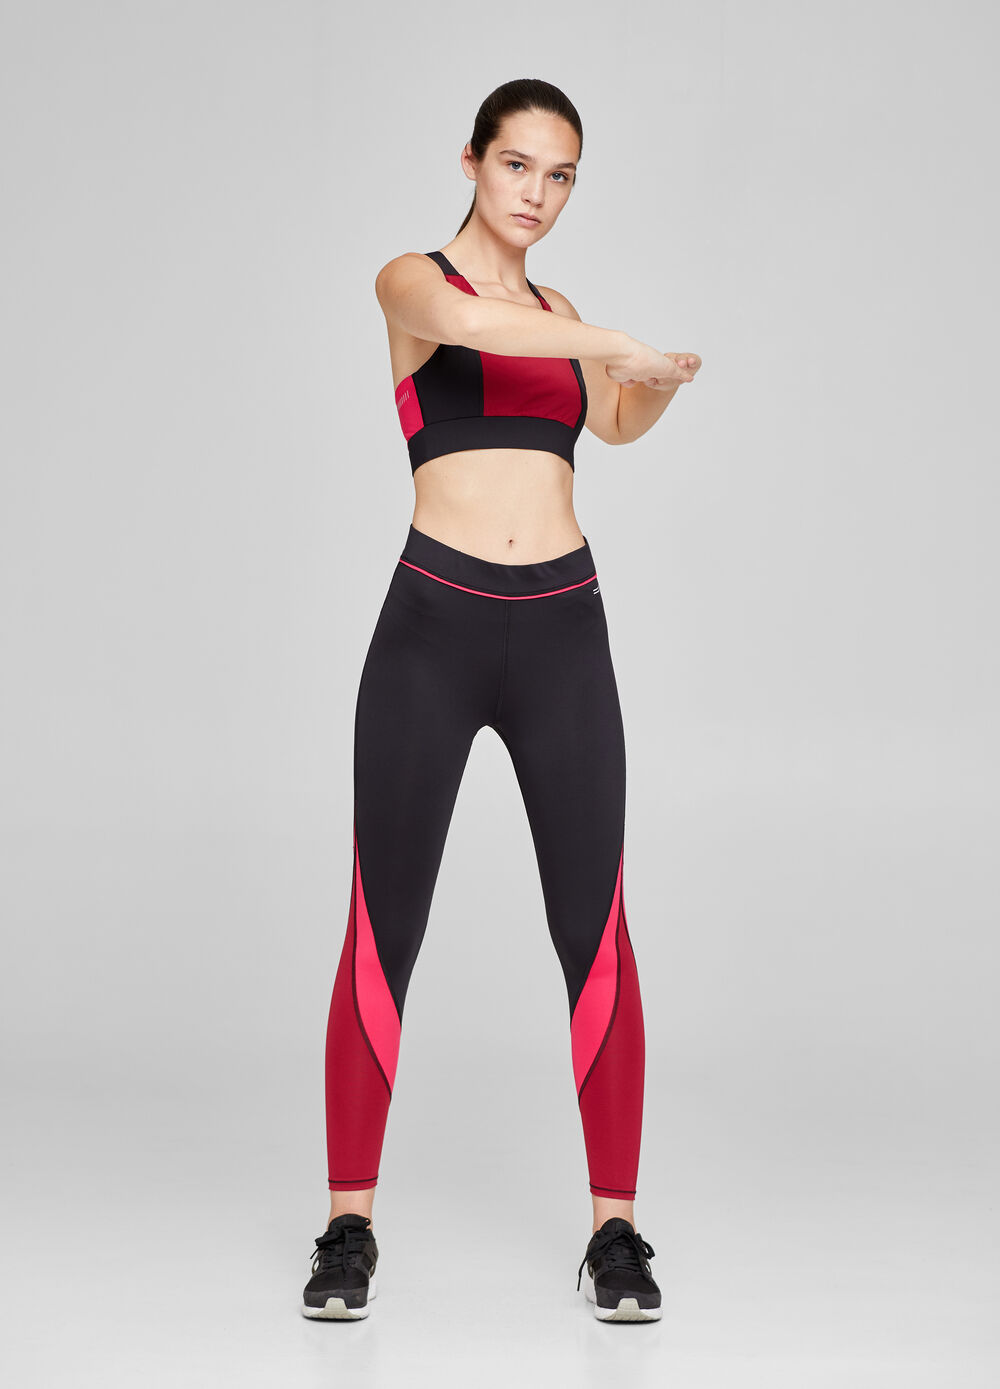 Two-tone stretch gym top